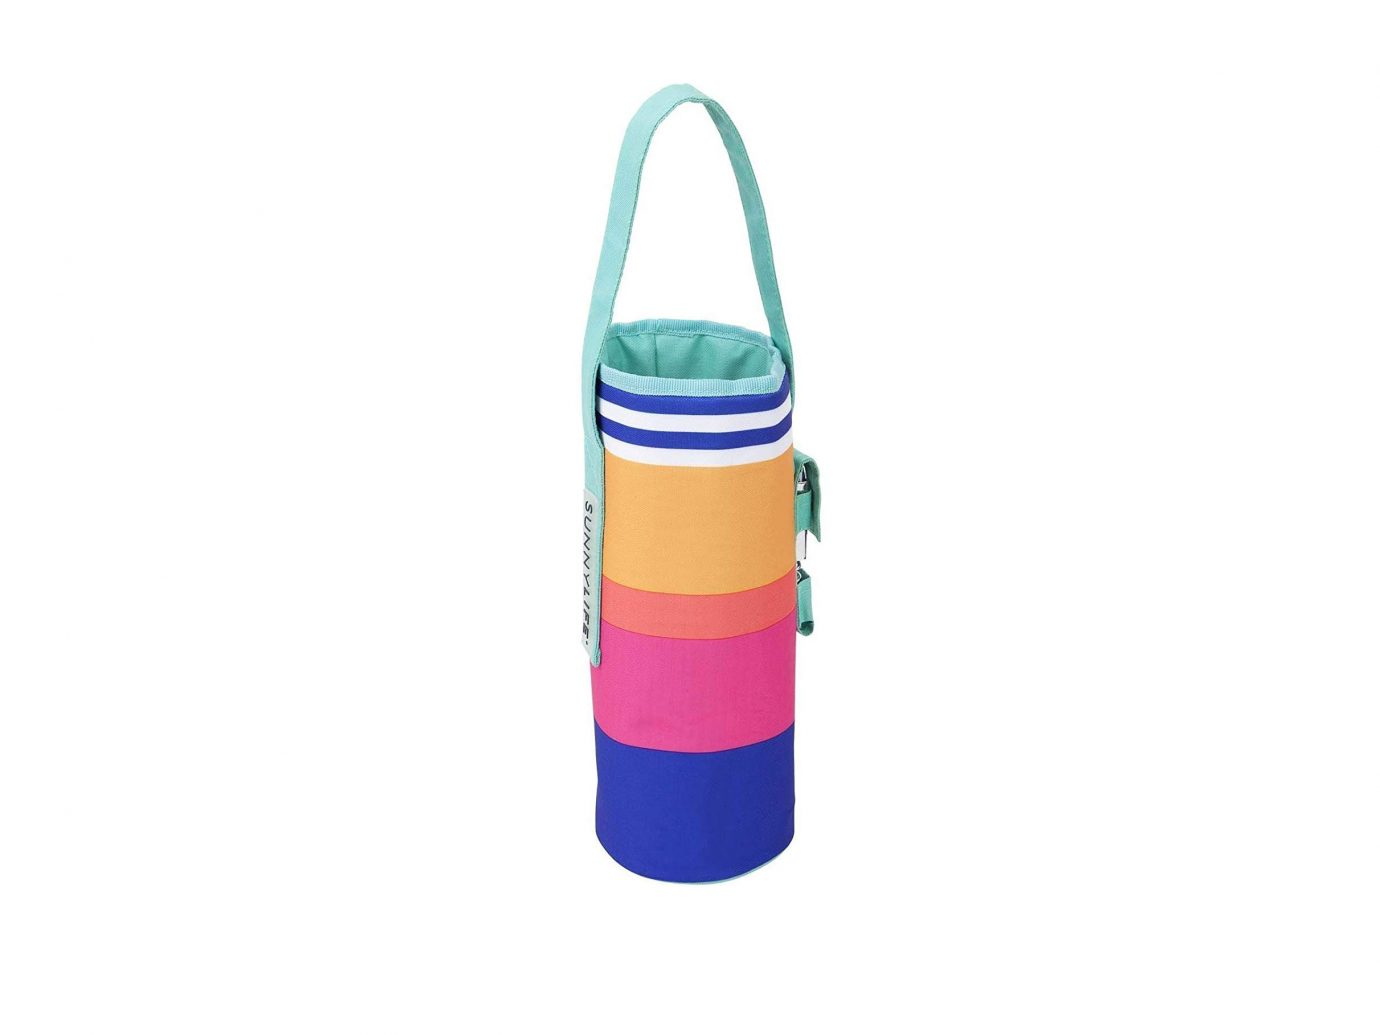 Sunnylife Bottle Tote Cooler